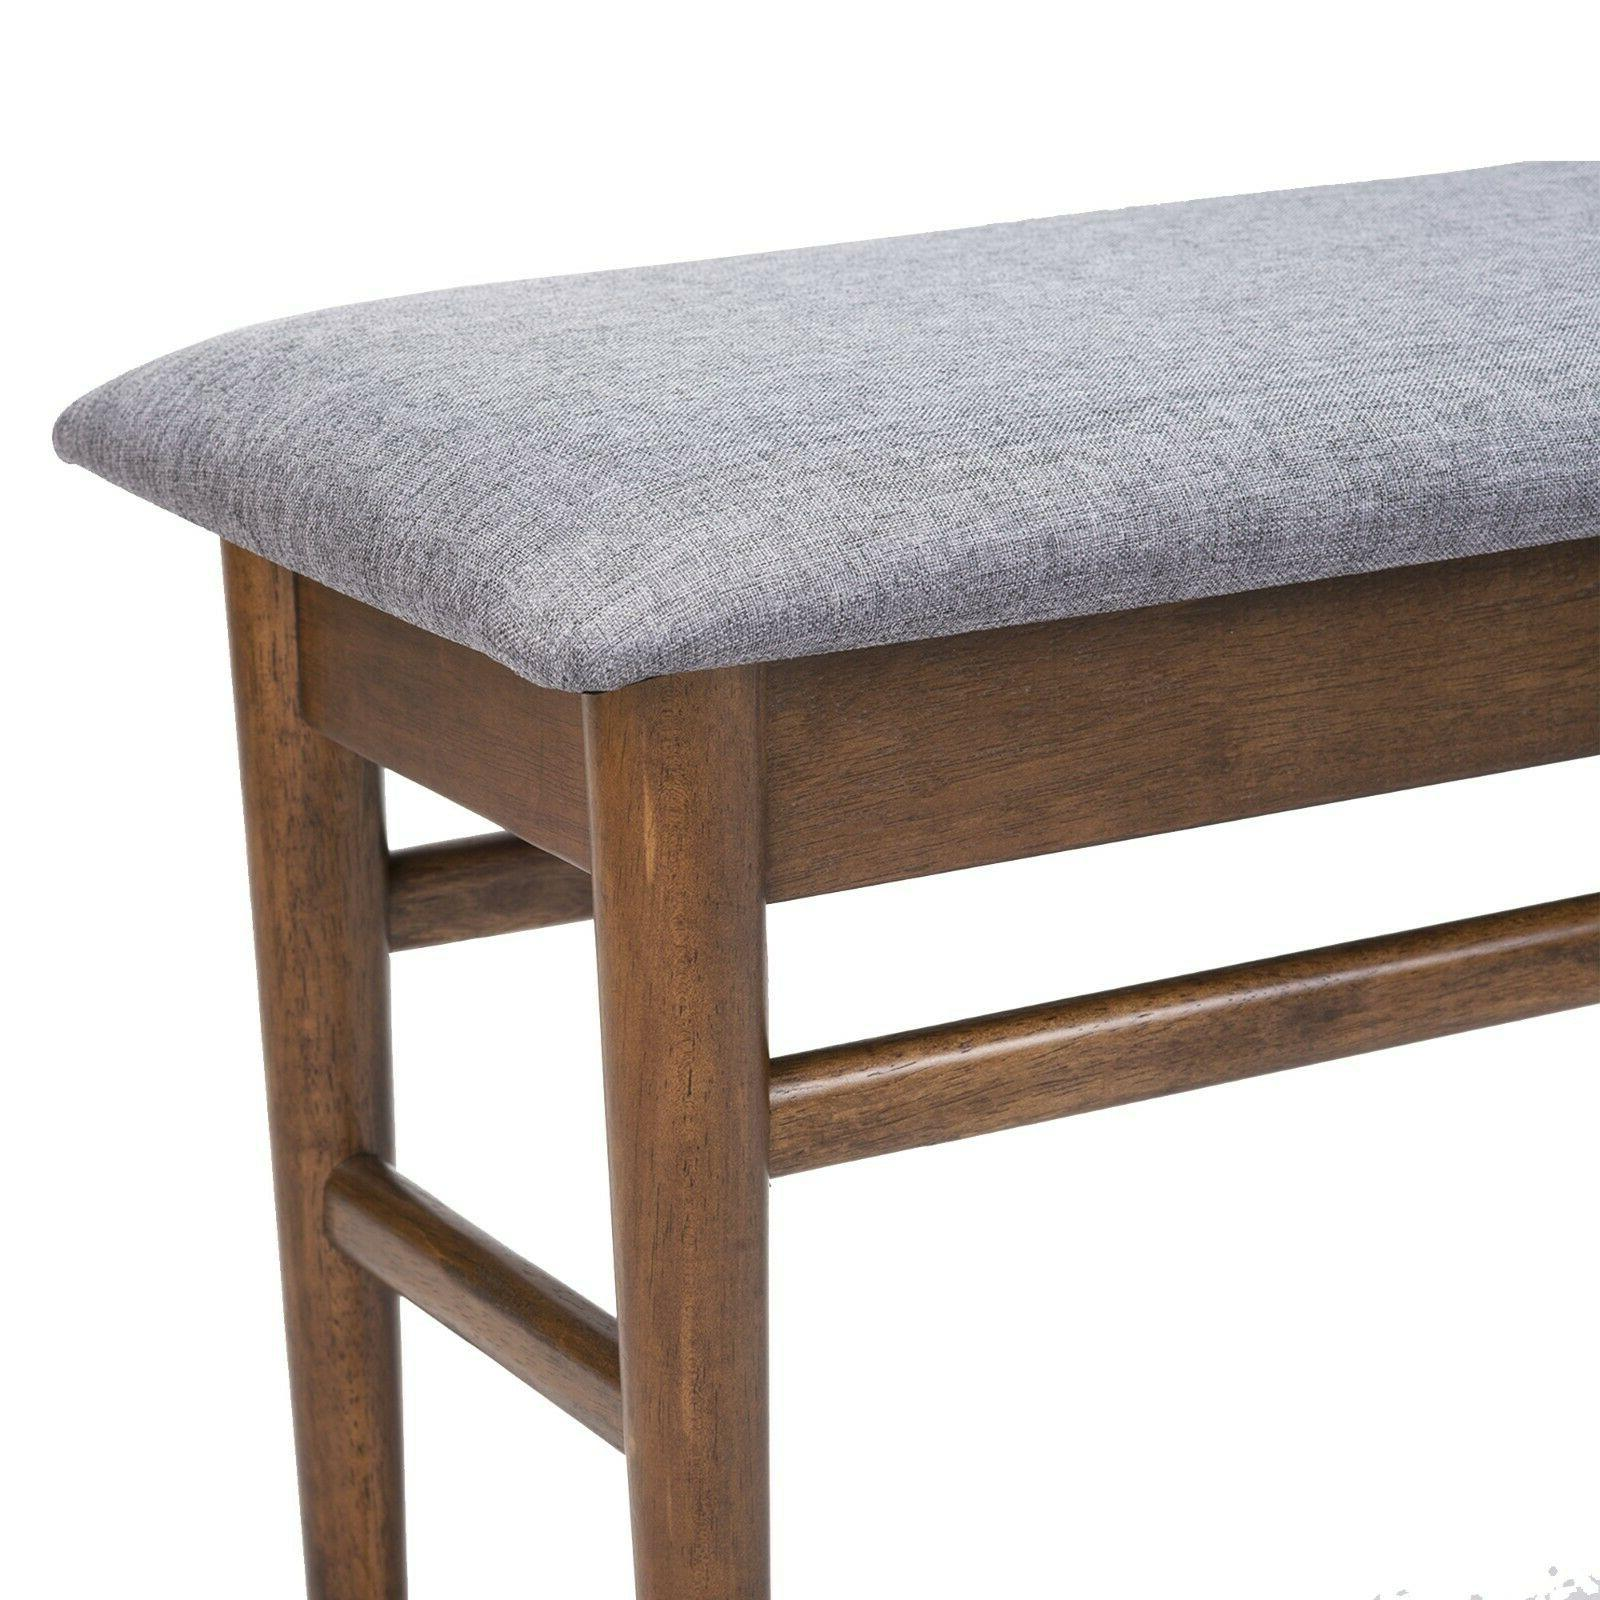 Dining Set of 6: Chairs Extendable Table Bench